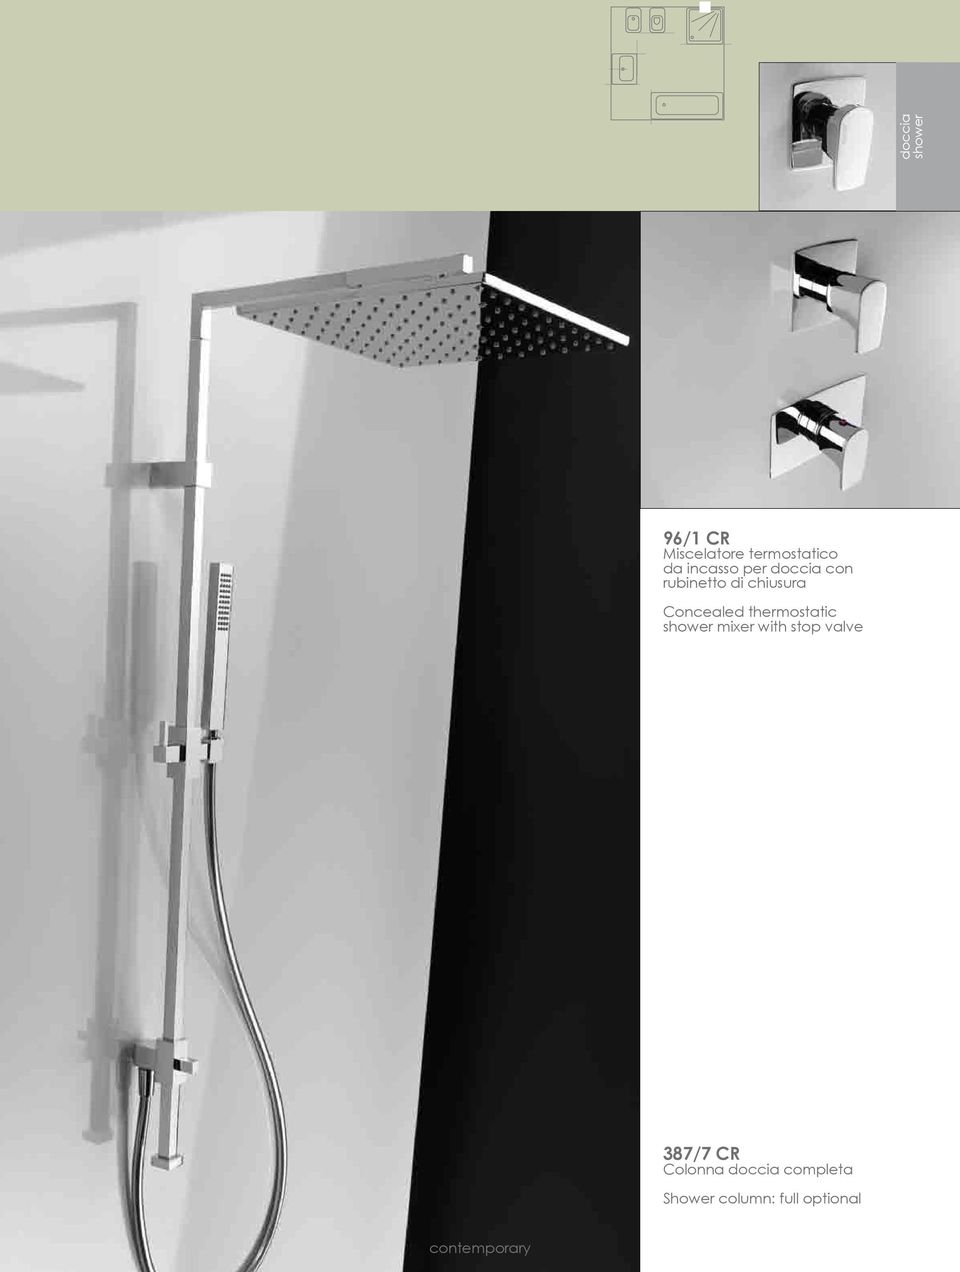 Concealed thermostatic shower mixer with stop valve